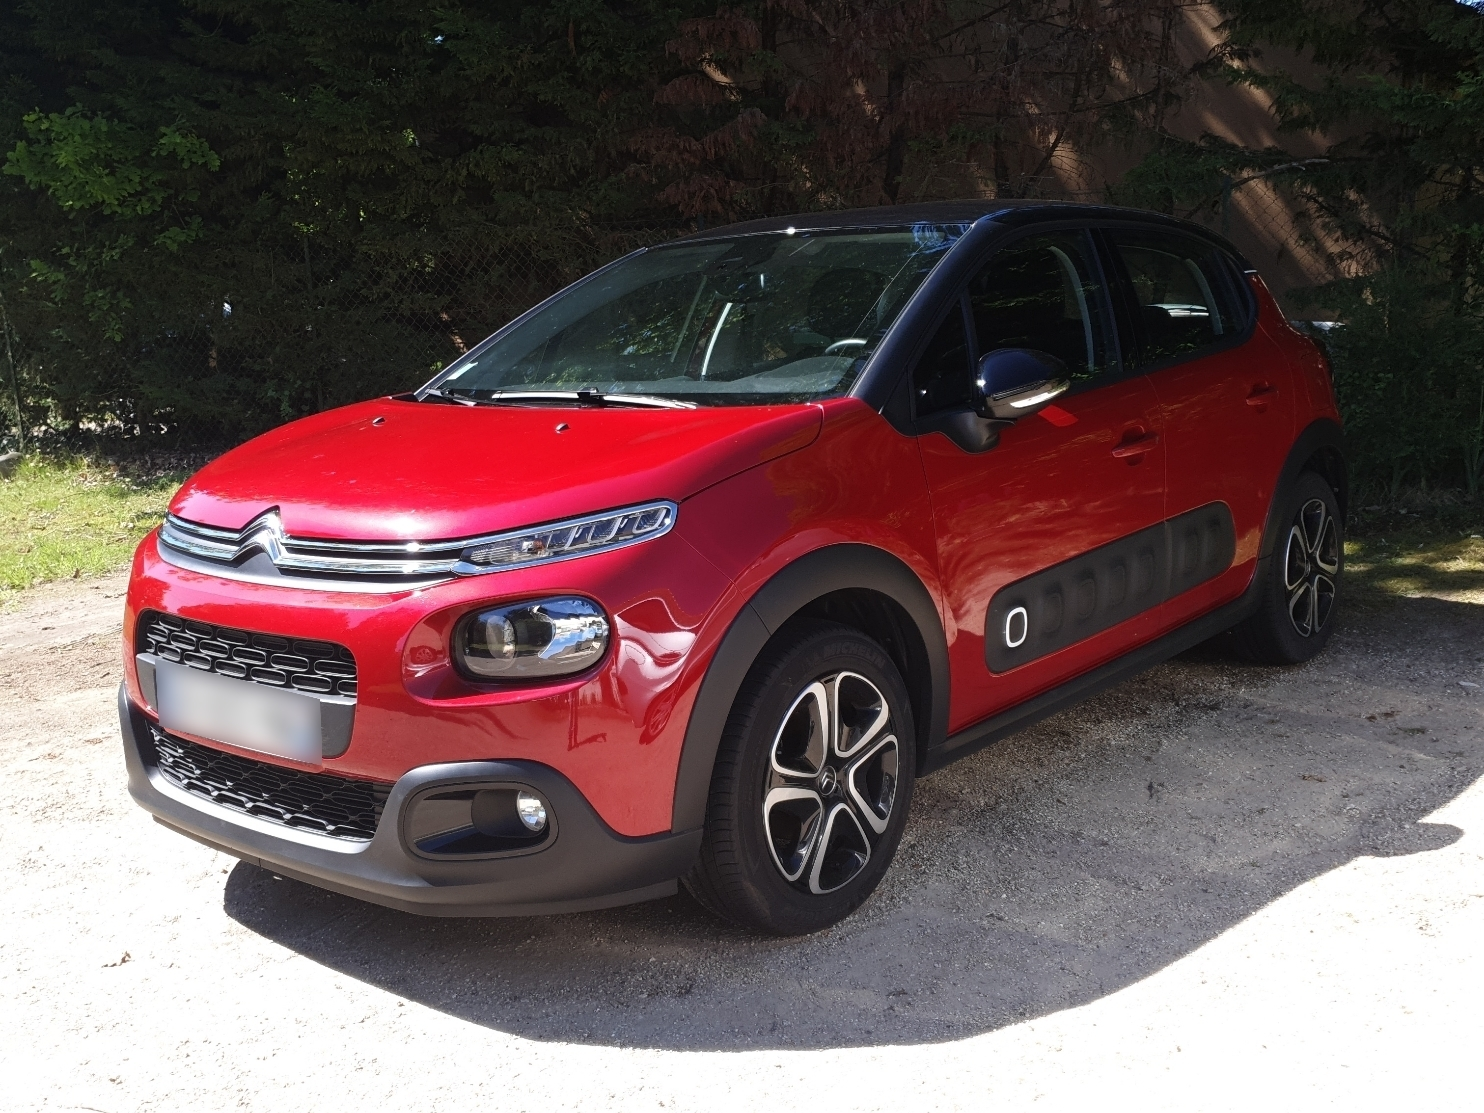 CITROEN C3 GENERATION-III 1.2 PURETECH 110 SHINE START-STOP